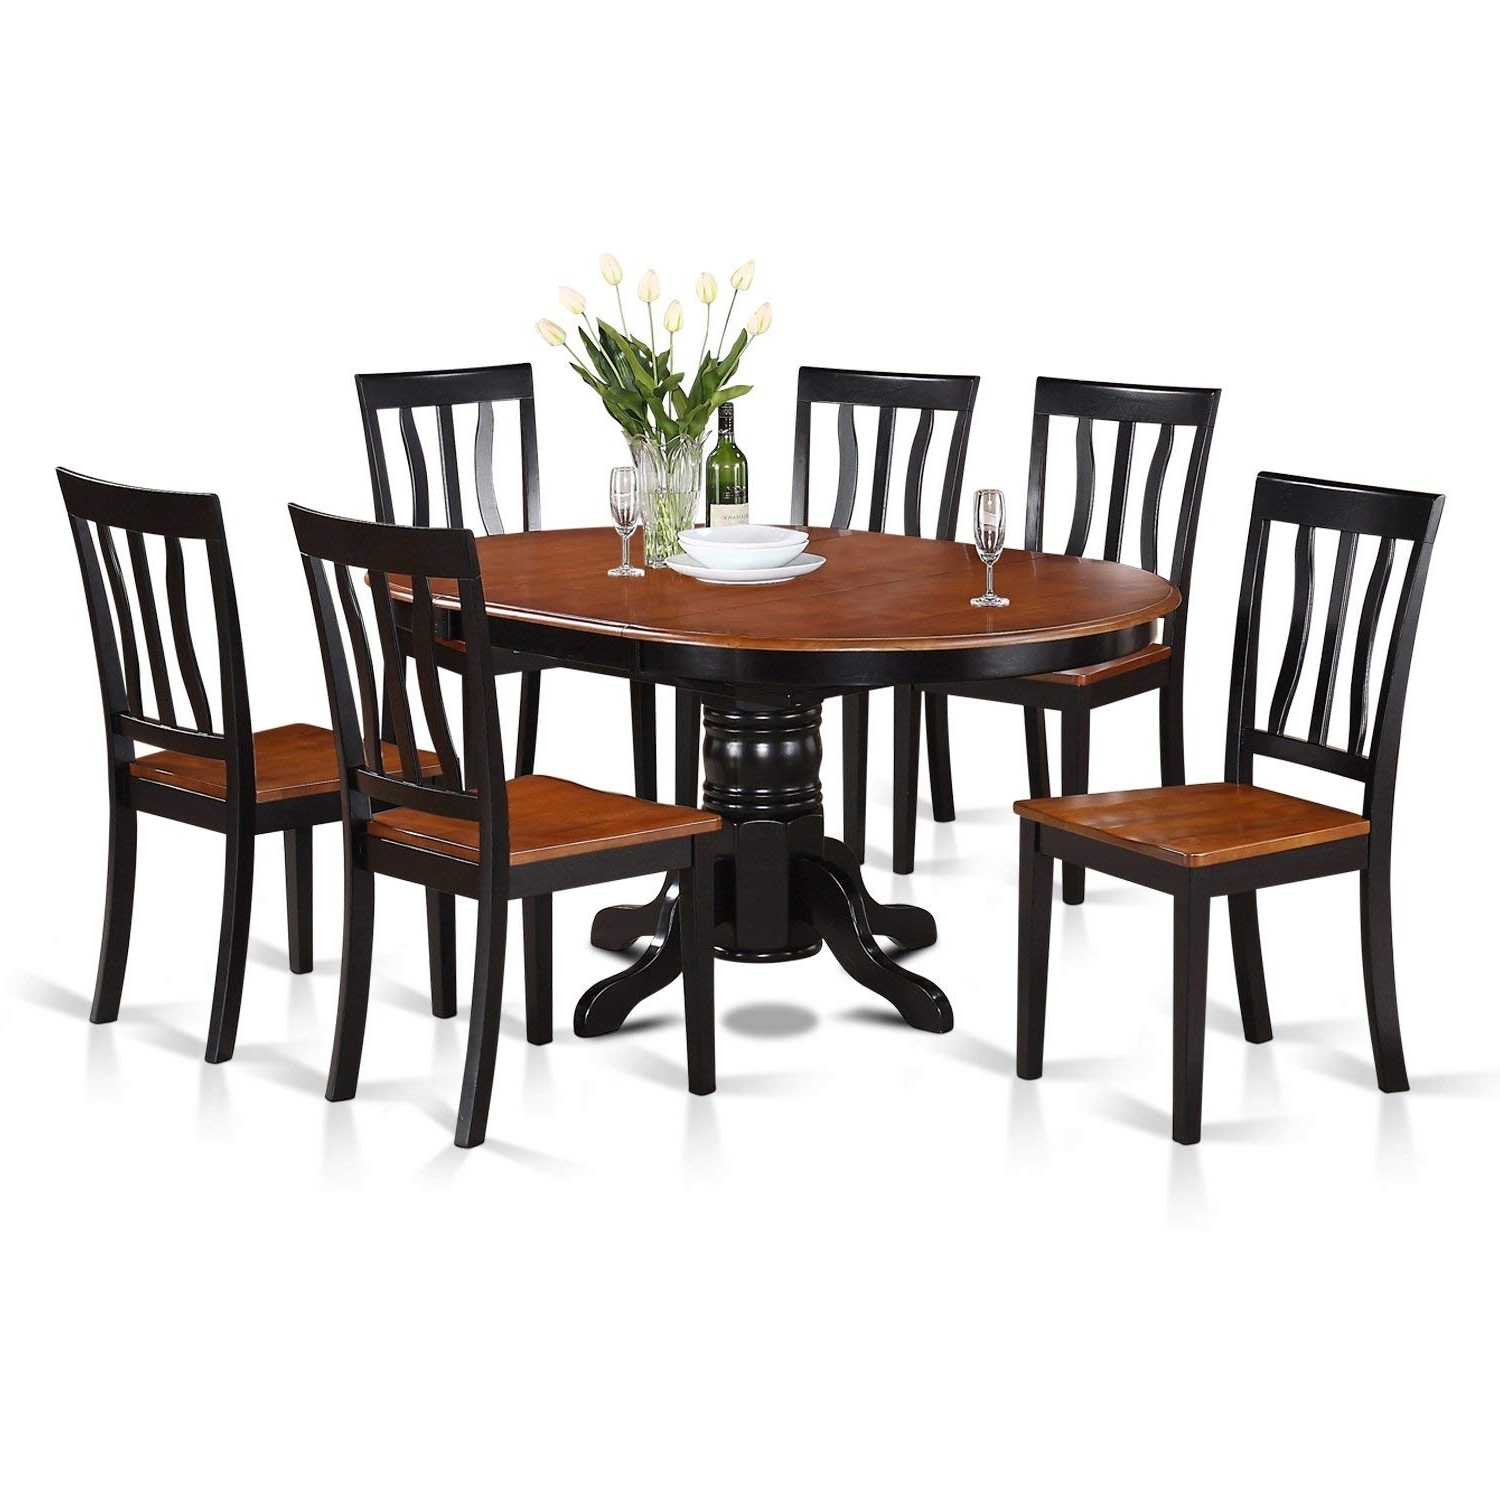 Amazon: East West Furniture Avat7 Blk W 7 Piece Dining Table Set Regarding Trendy Dining Table Sets With 6 Chairs (View 3 of 25)